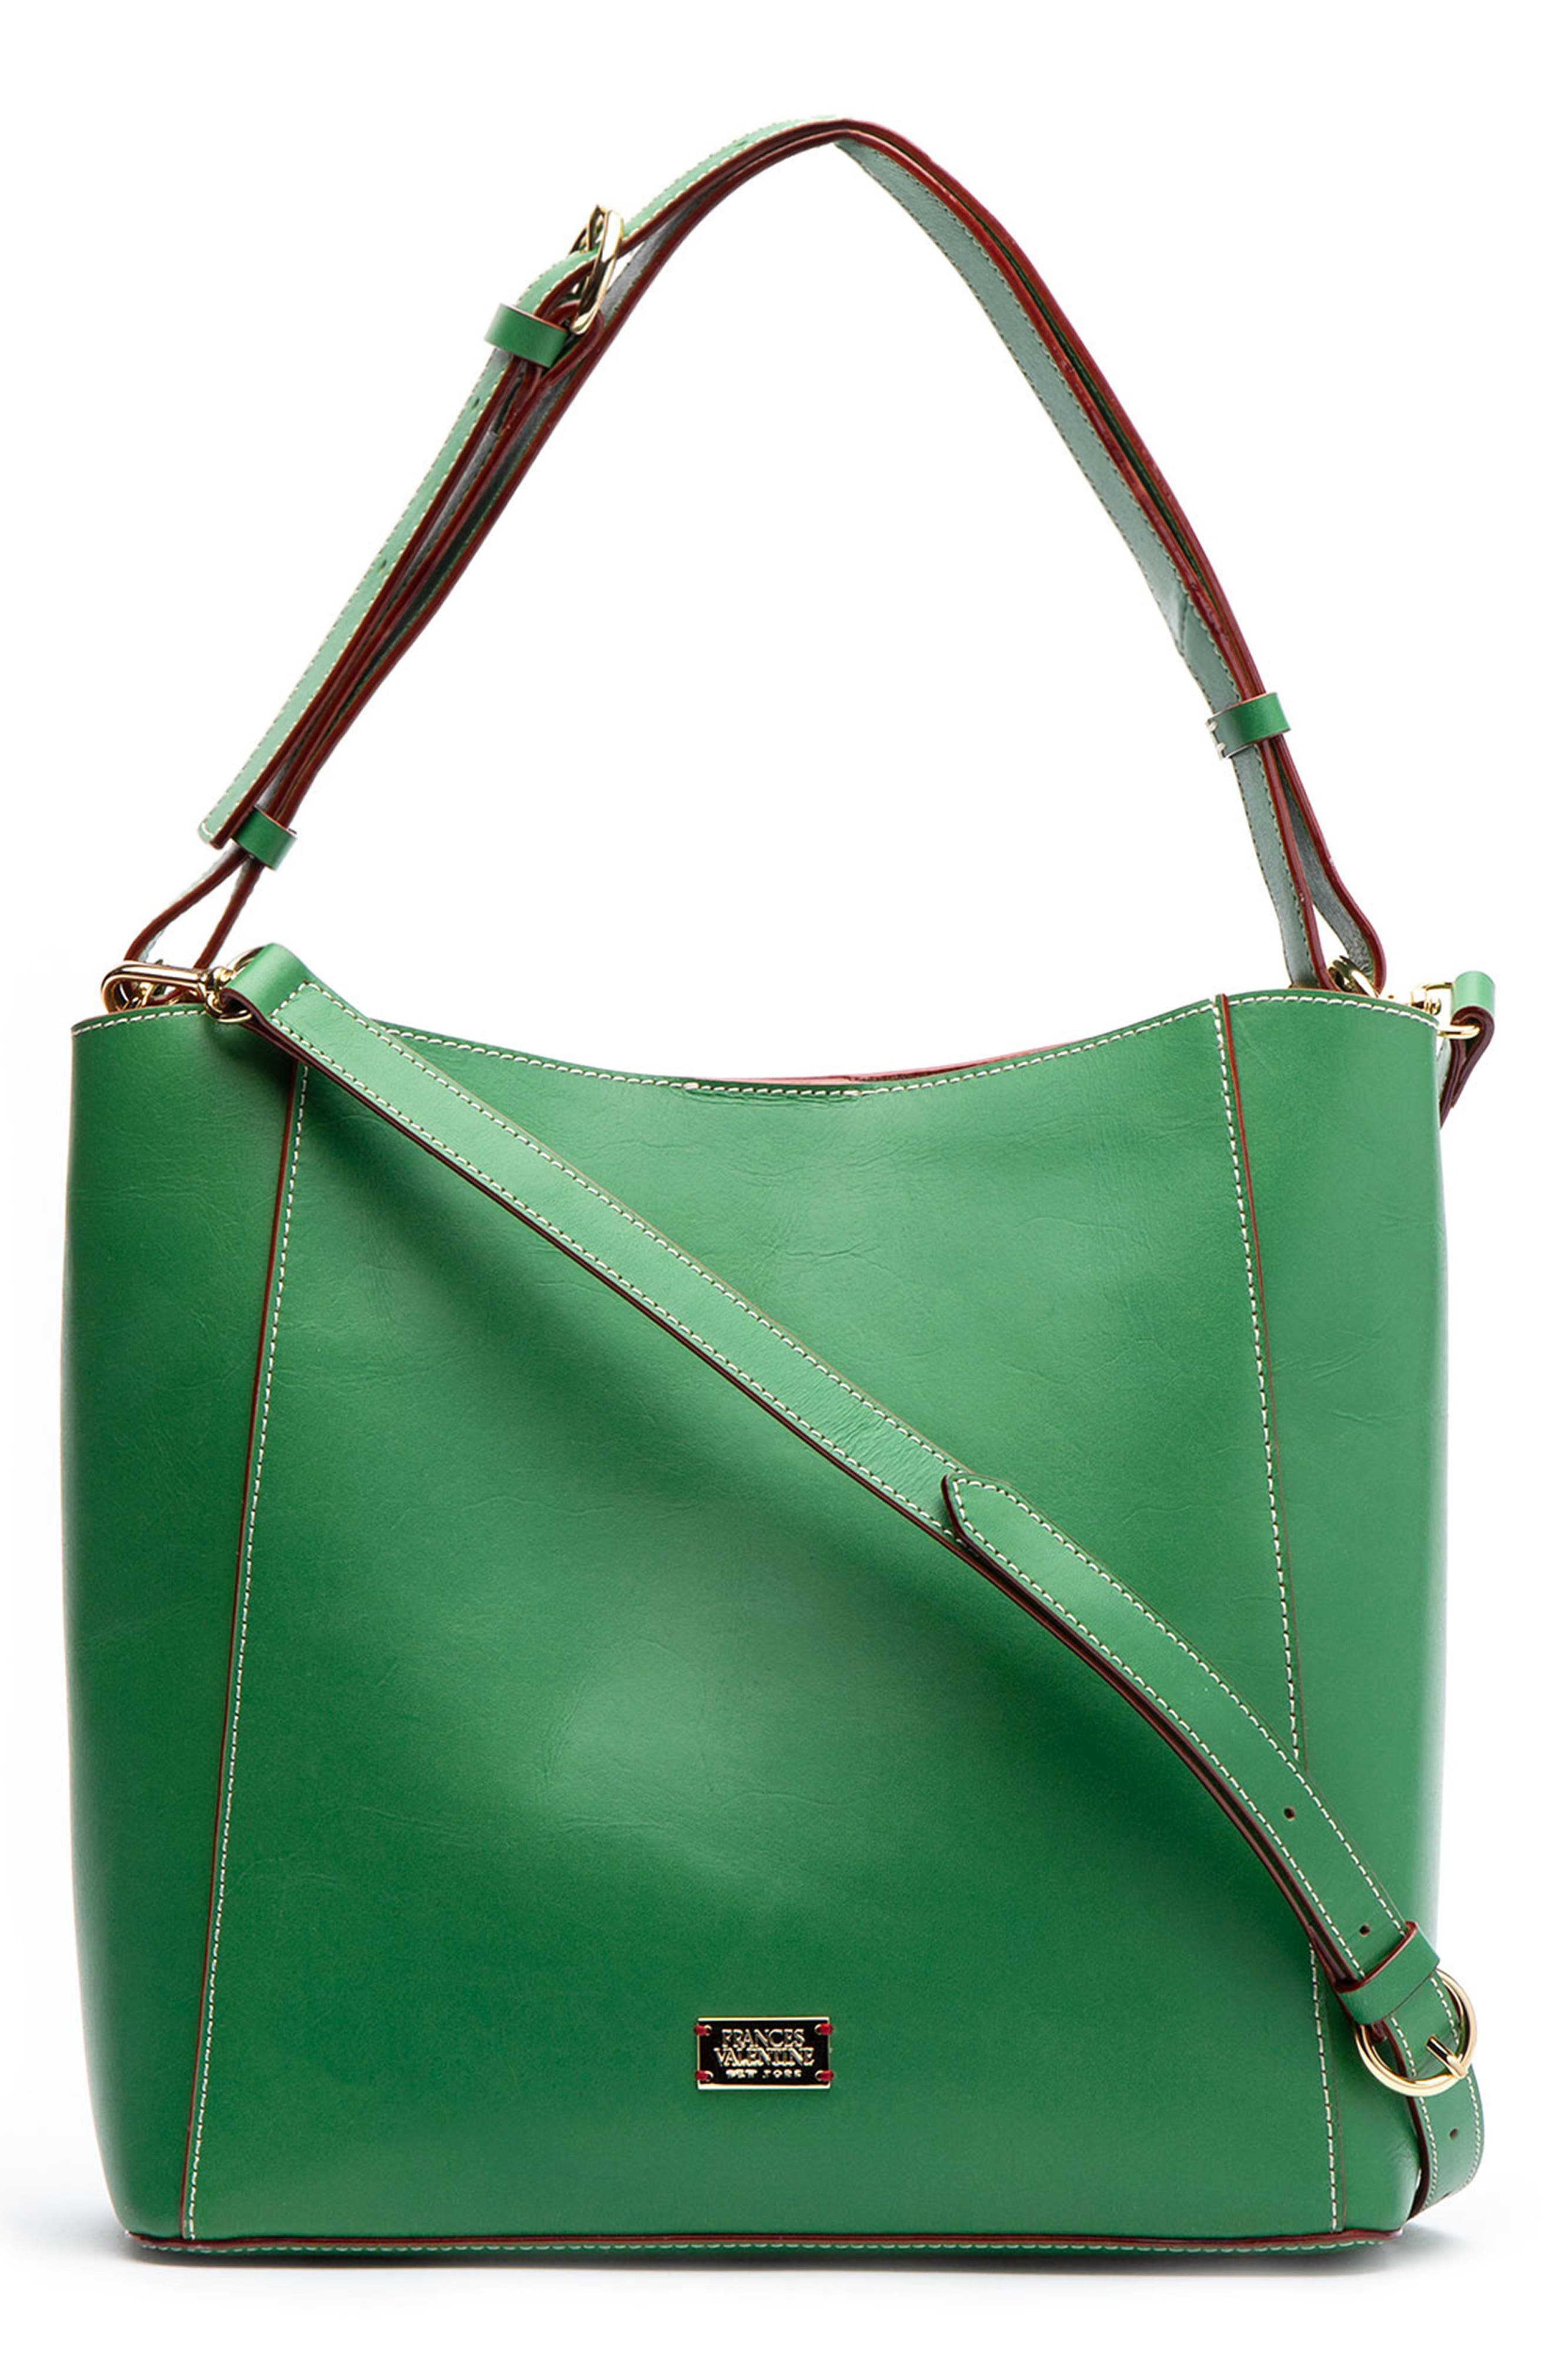 FRANCES VALENTINE Medium June Leather Hobo - Green in Green Ray